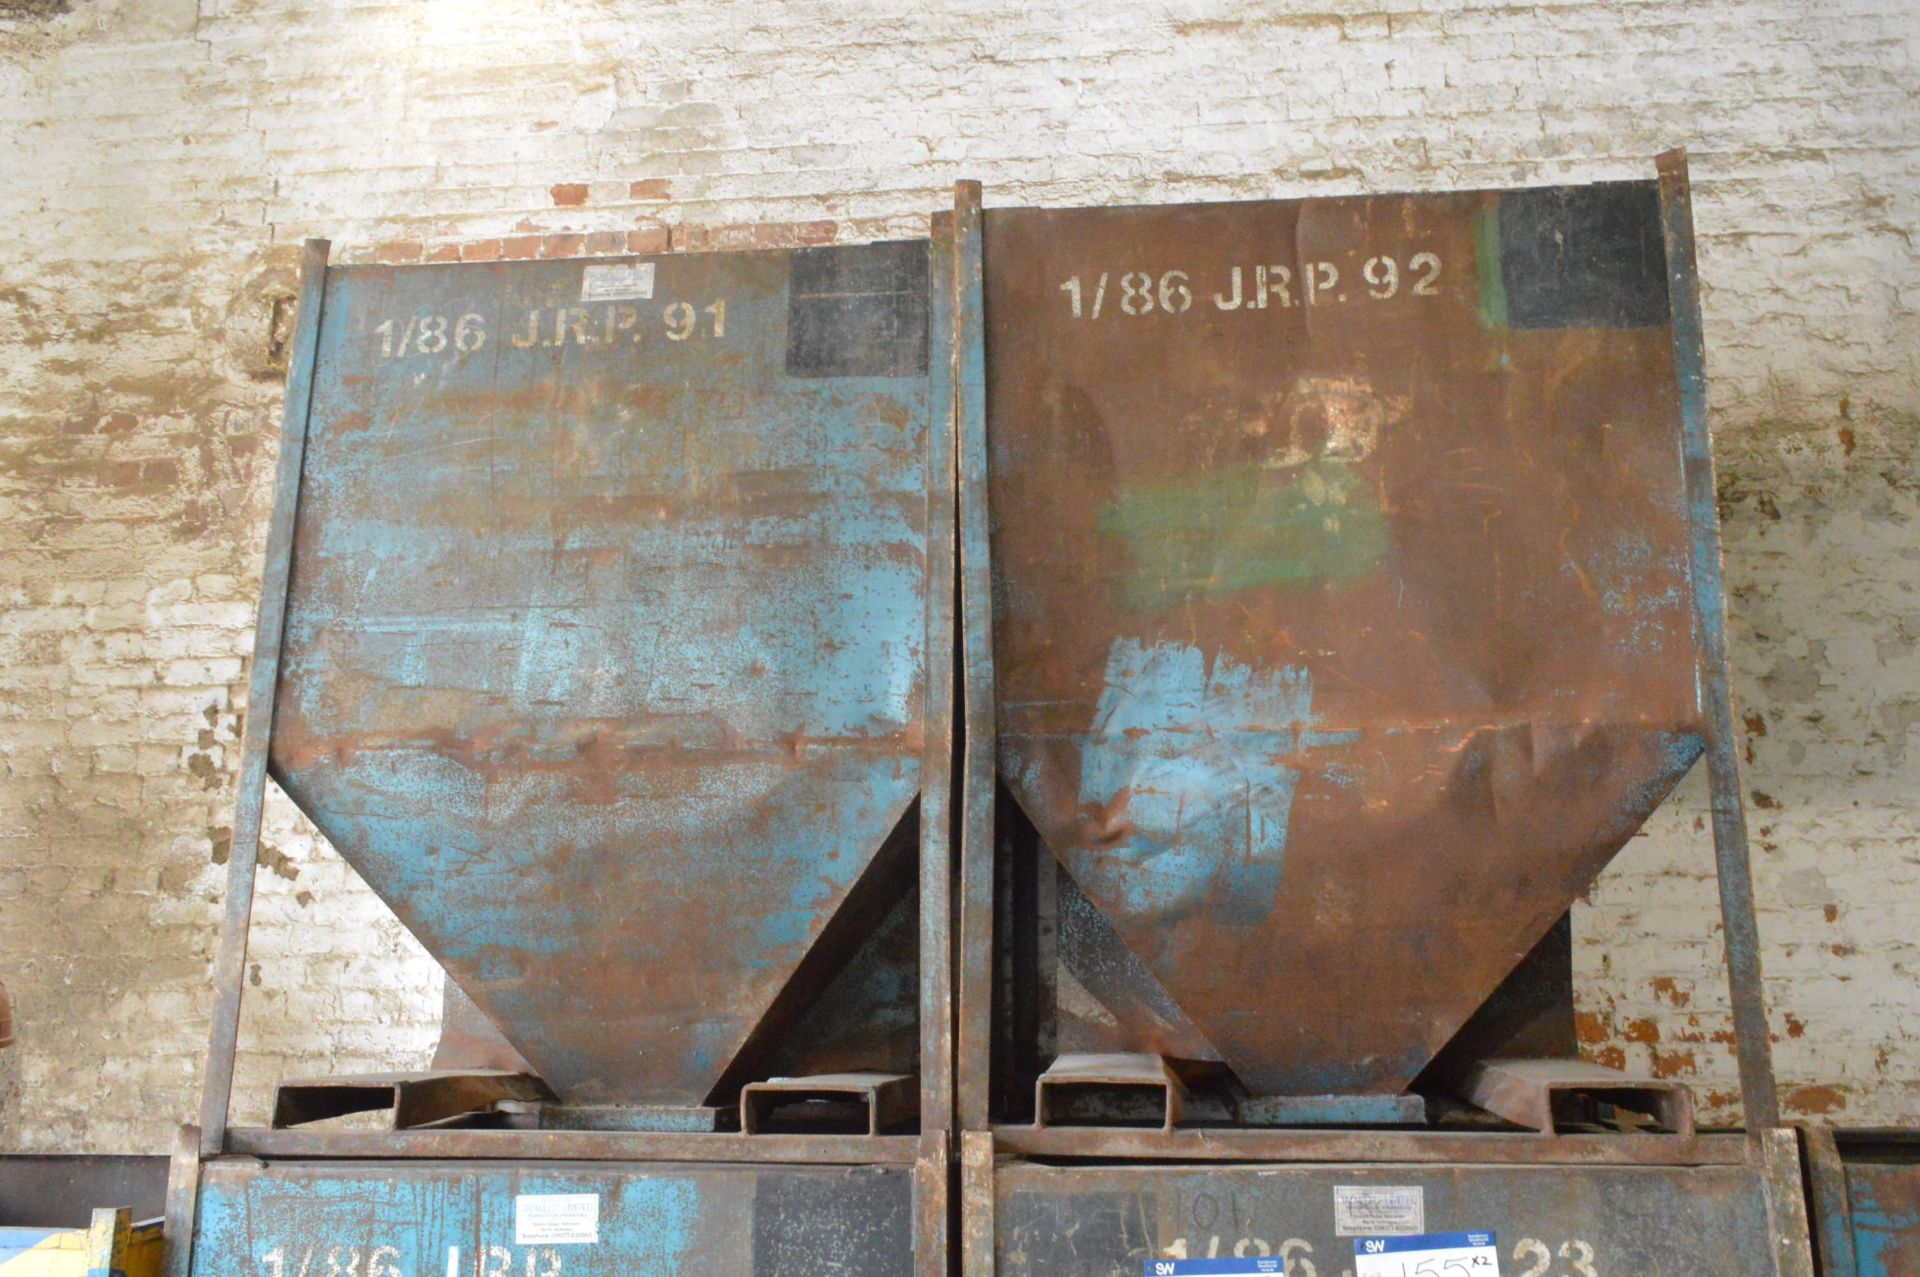 Lot 152 - Two x 1 tonne Hopper Bottom Tote Bins, each approx. 1.25m x 1.1m x 1.6m deep overall, with fork lift